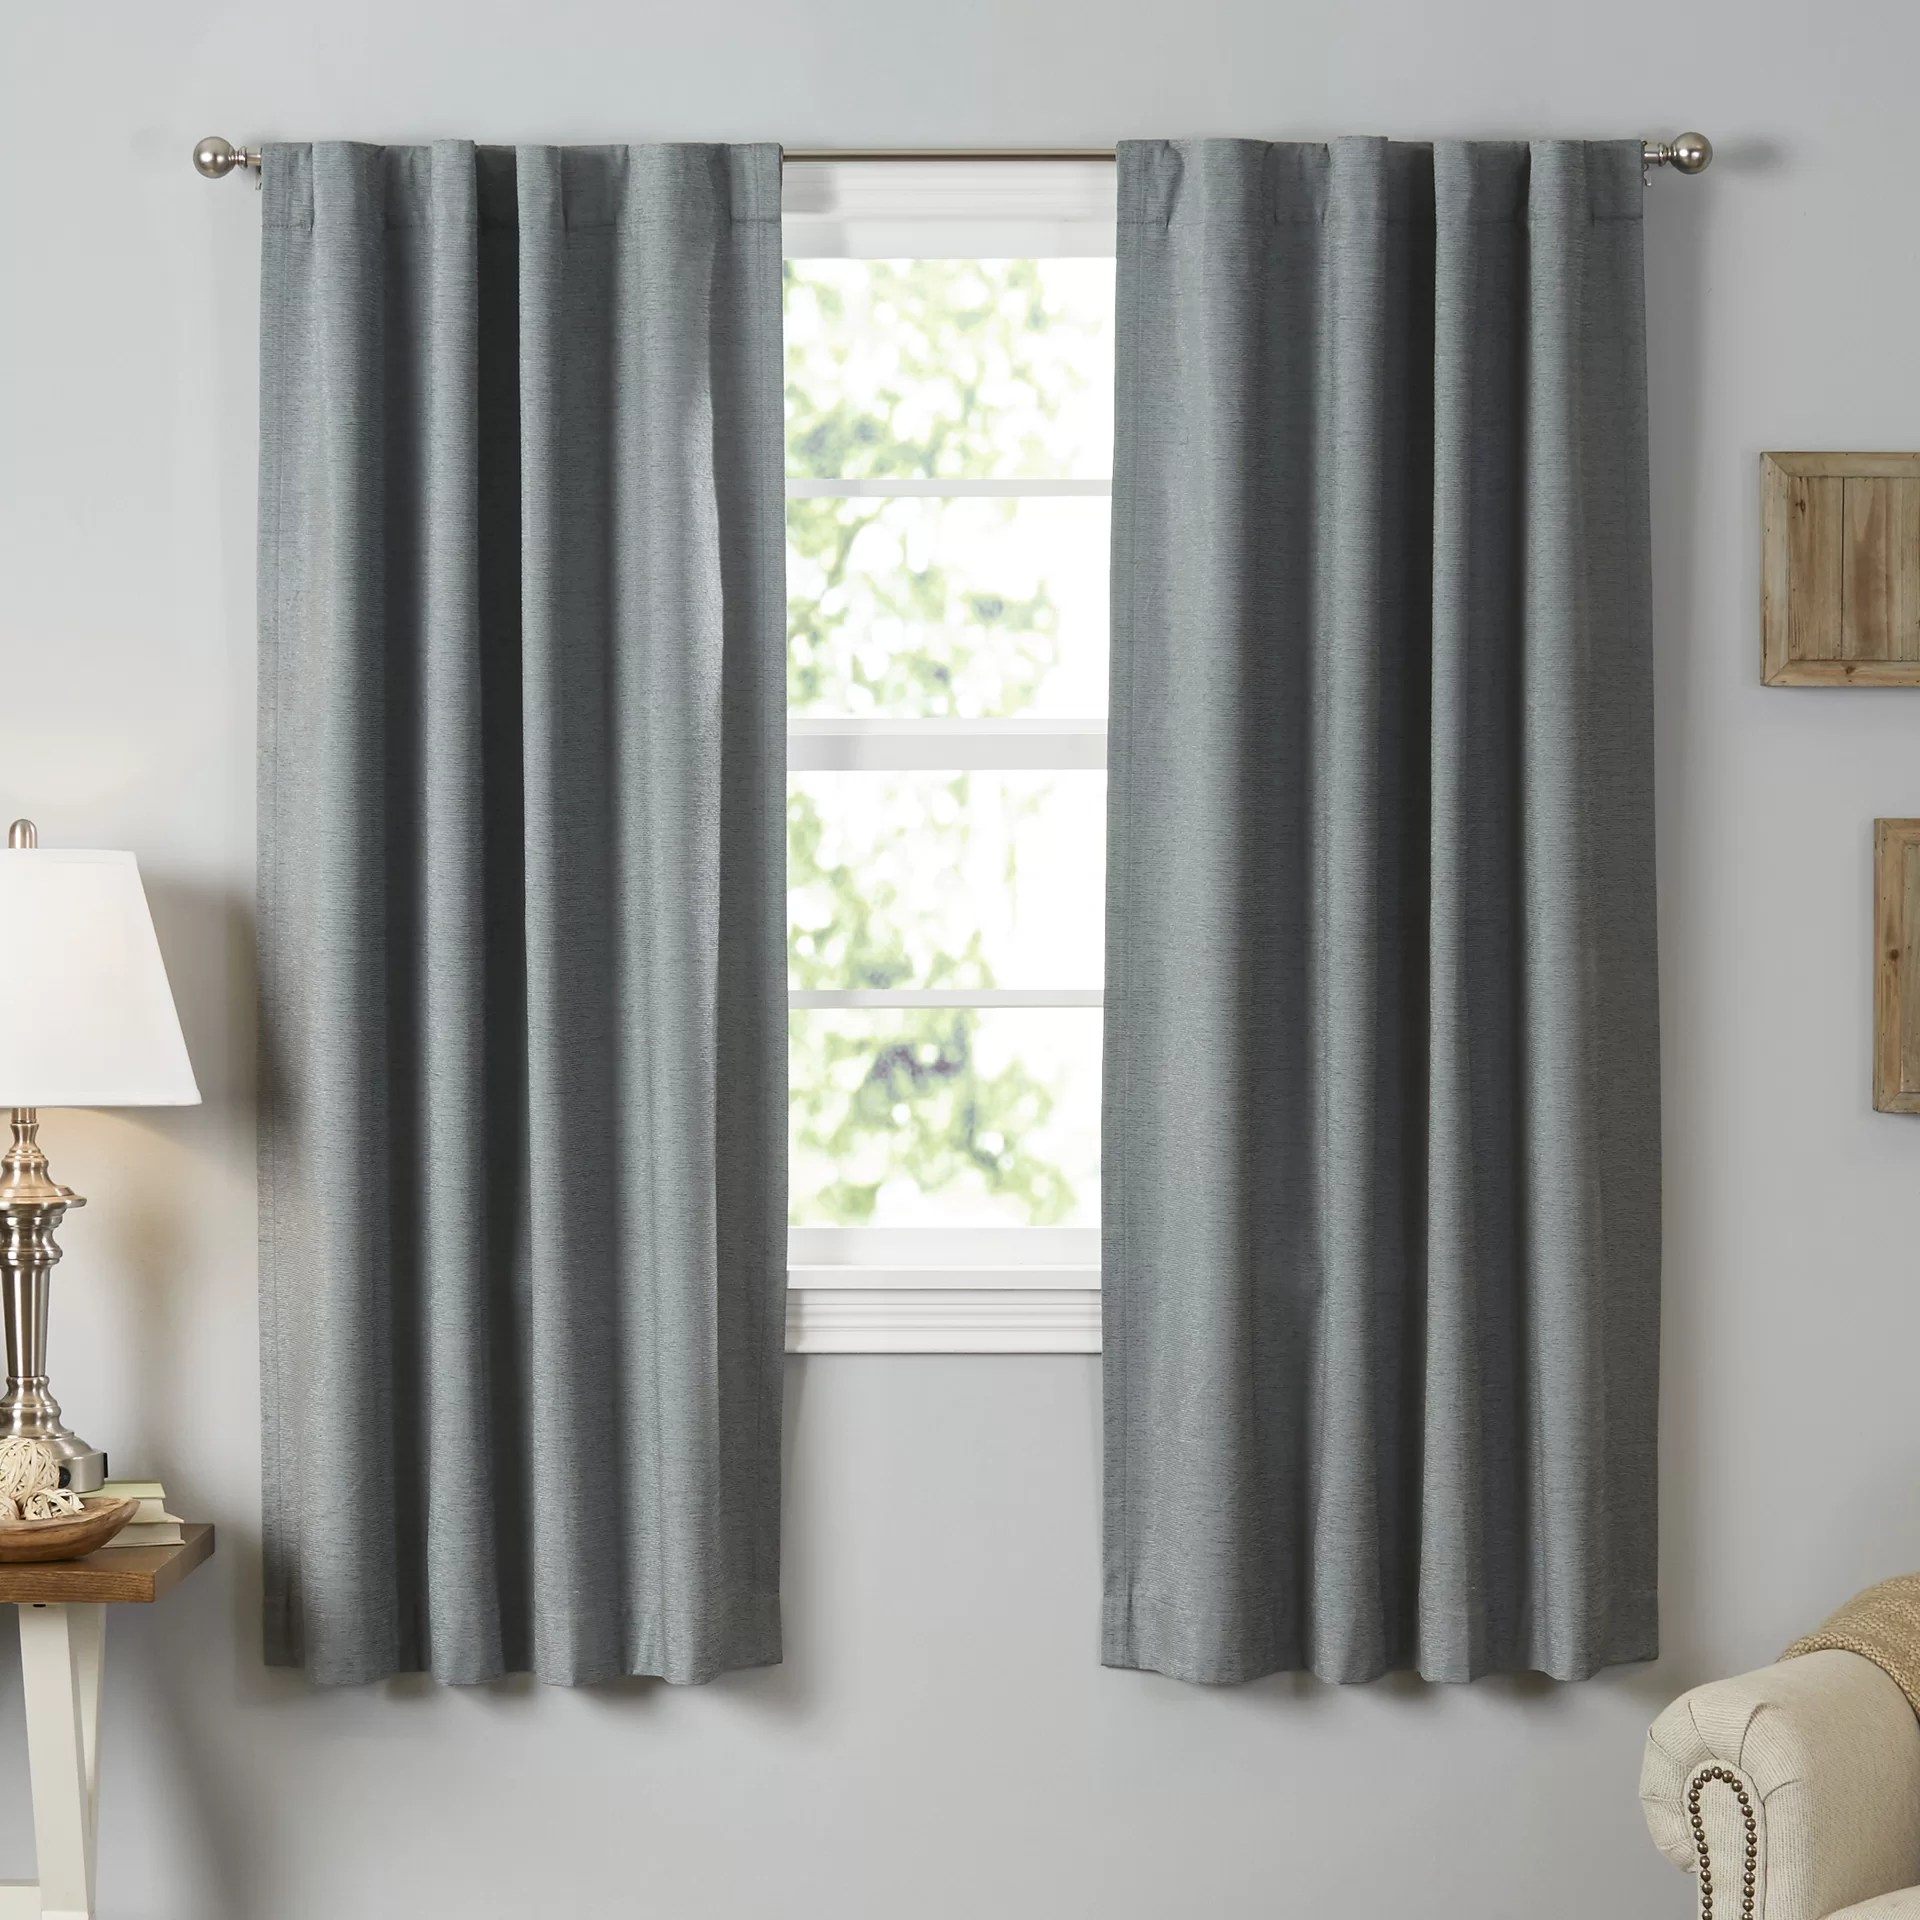 Bedroom Curtains Room Darkening Sound Asleep Room Darkening Rod Pocket Thermal Blackout